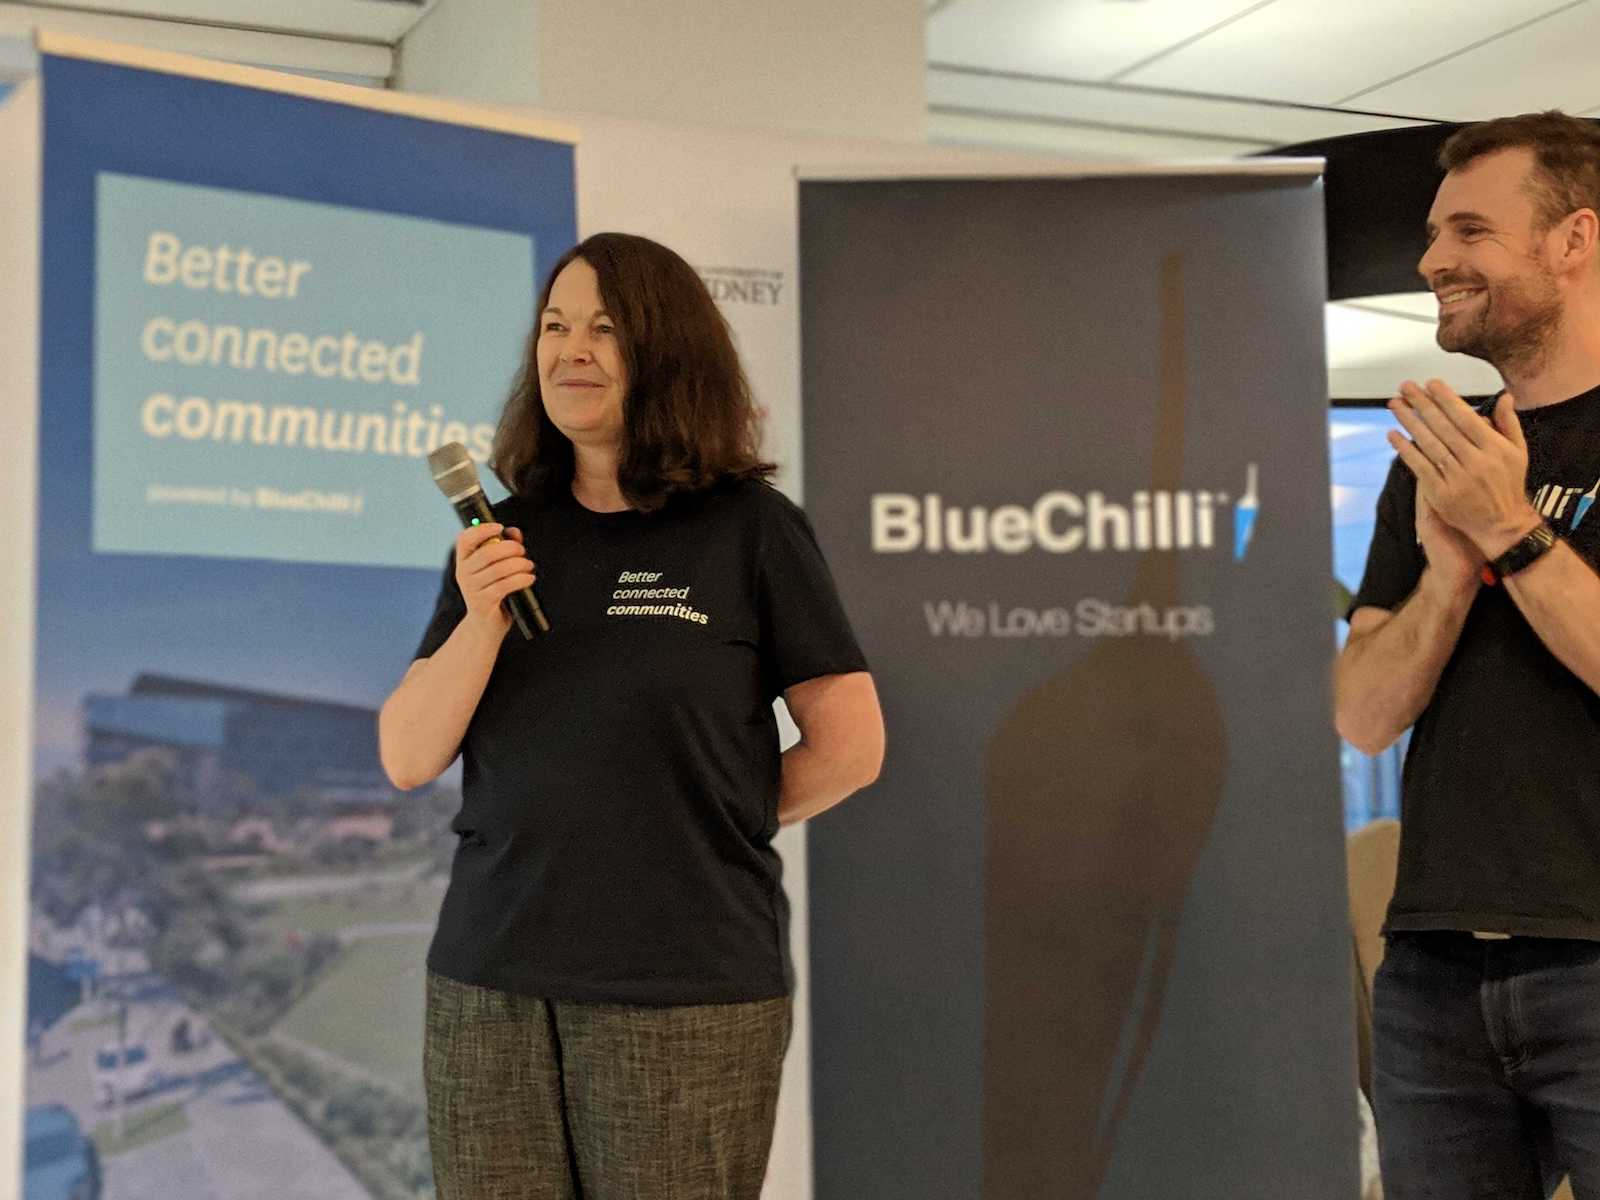 At Stockland Product Showcase Robyn Elliott from Stockland with BlueChilli CEO, Seb.